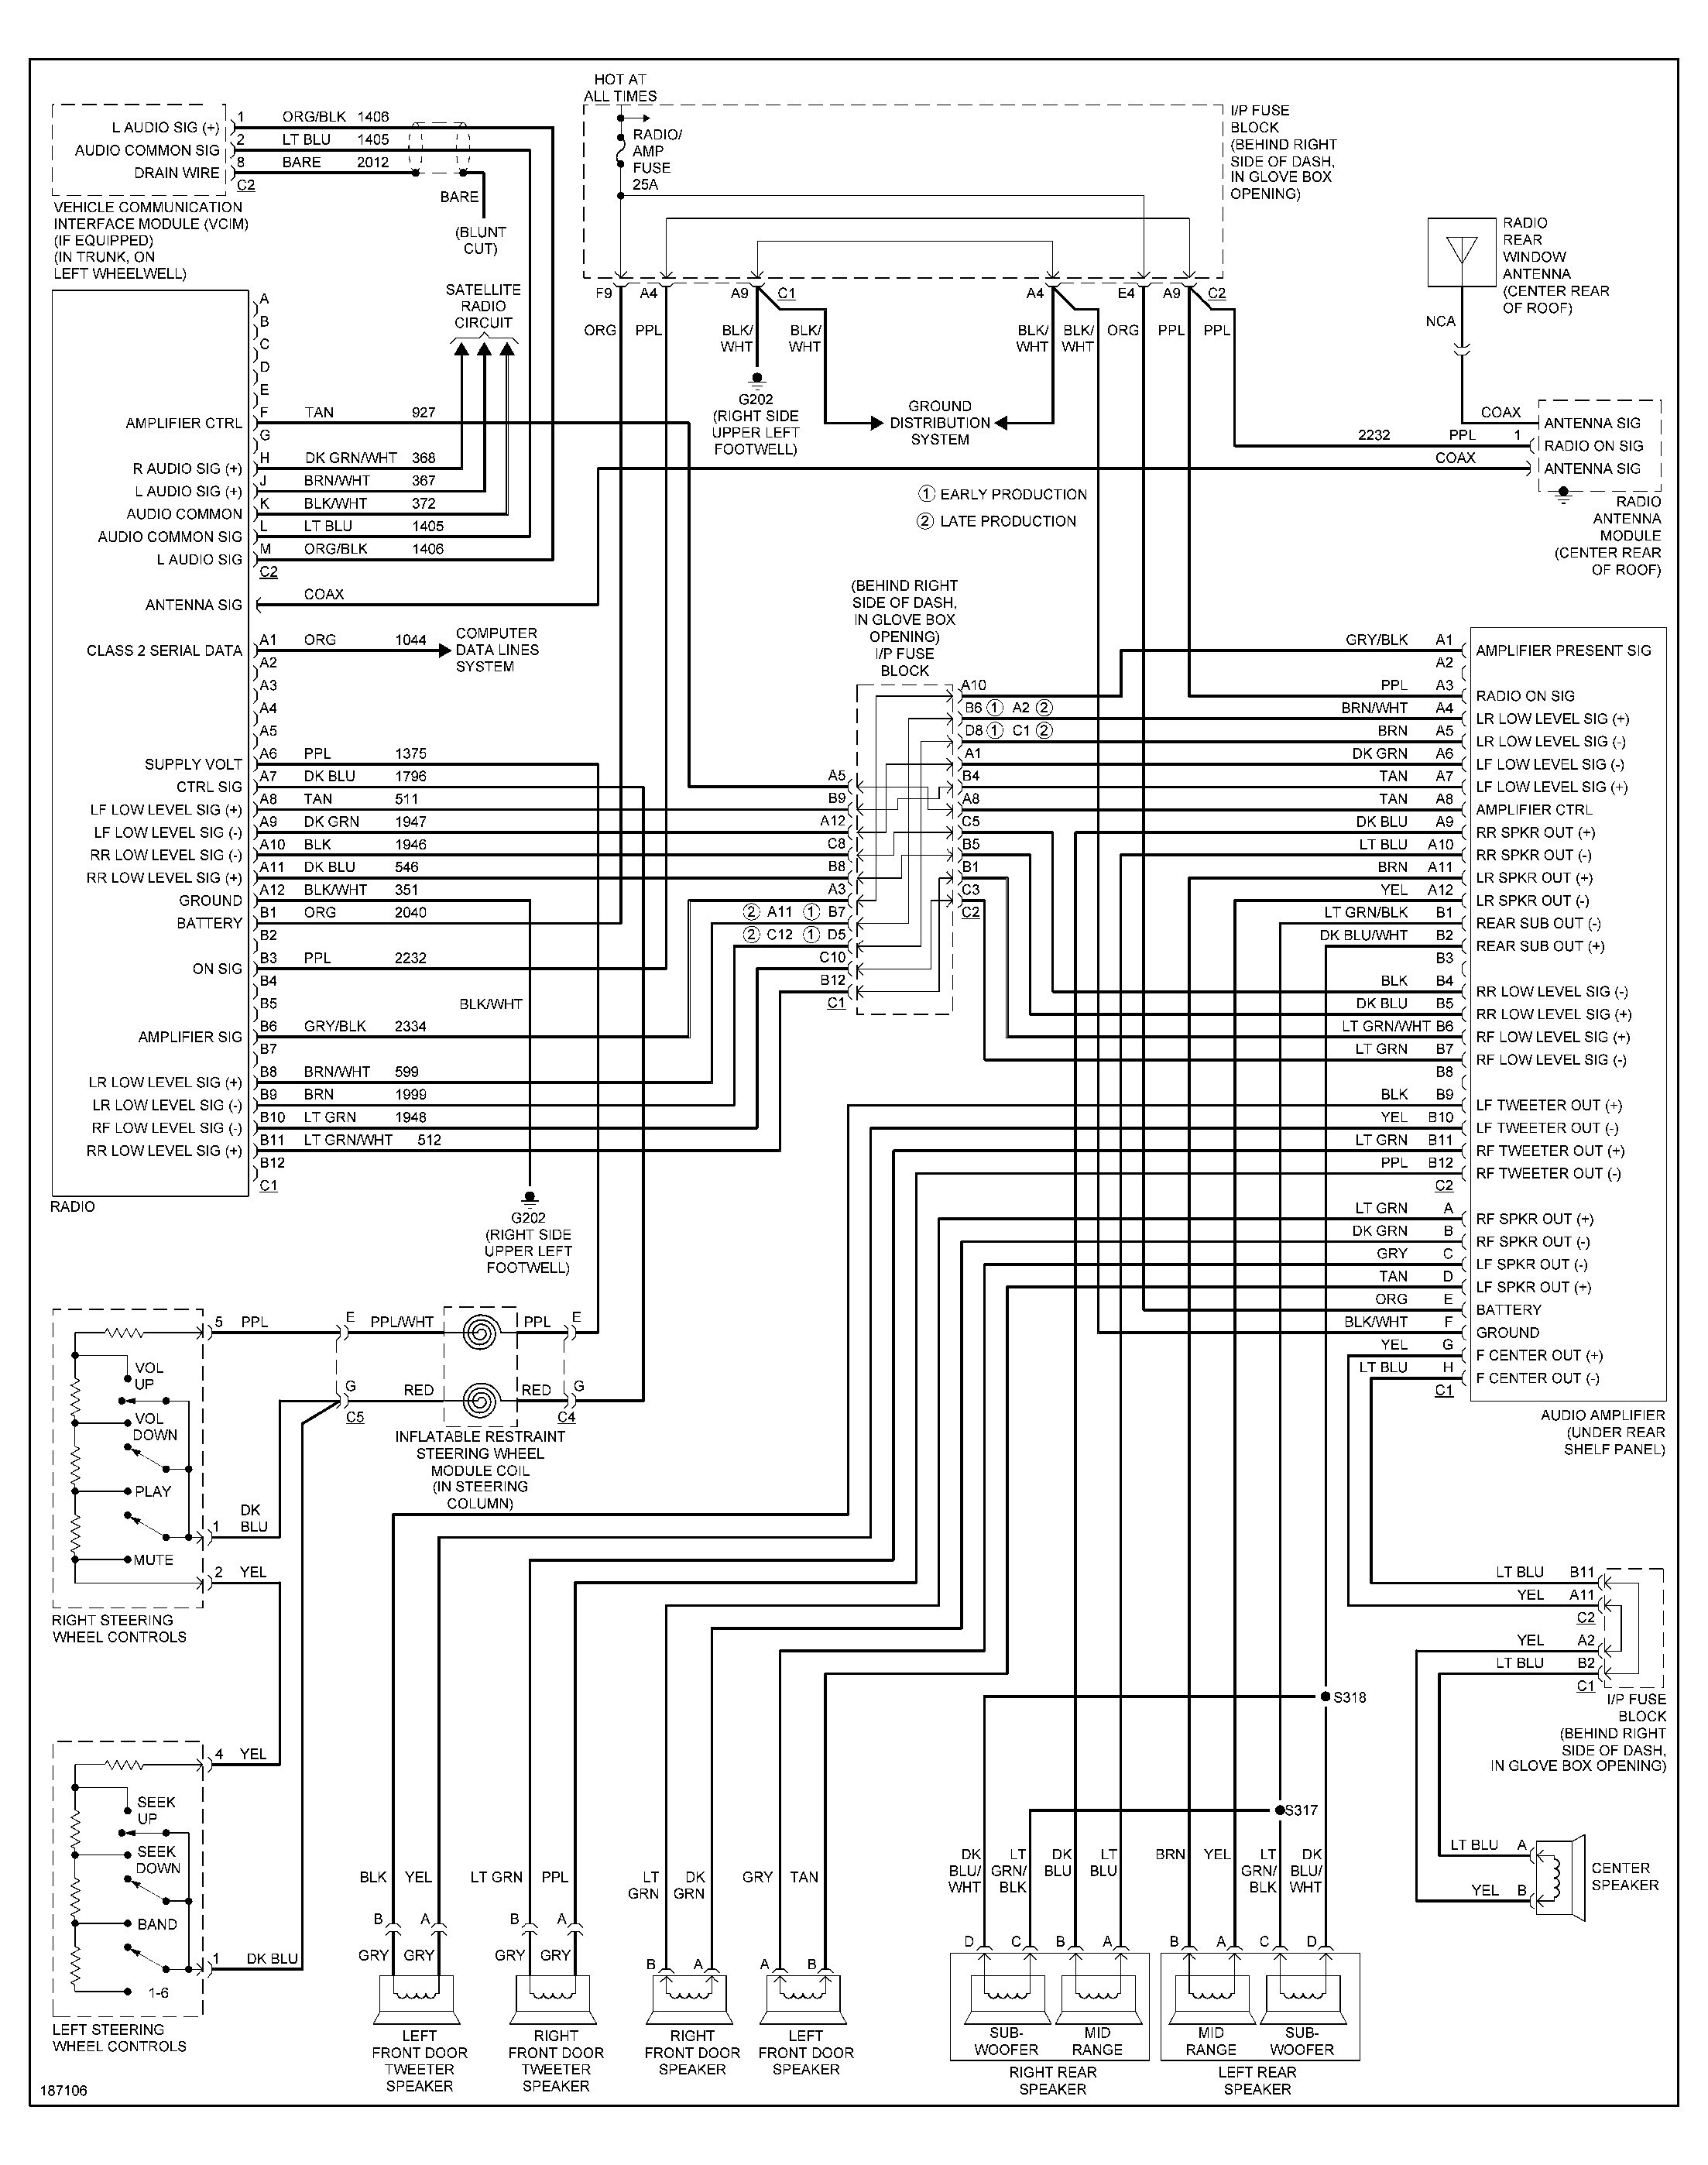 2004 pontiac montana engine diagram trusted wiring diagrams u2022 rh sivamuni com 2001 pontiac grand am gt engine diagram 2001 pontiac grand prix engine diagram